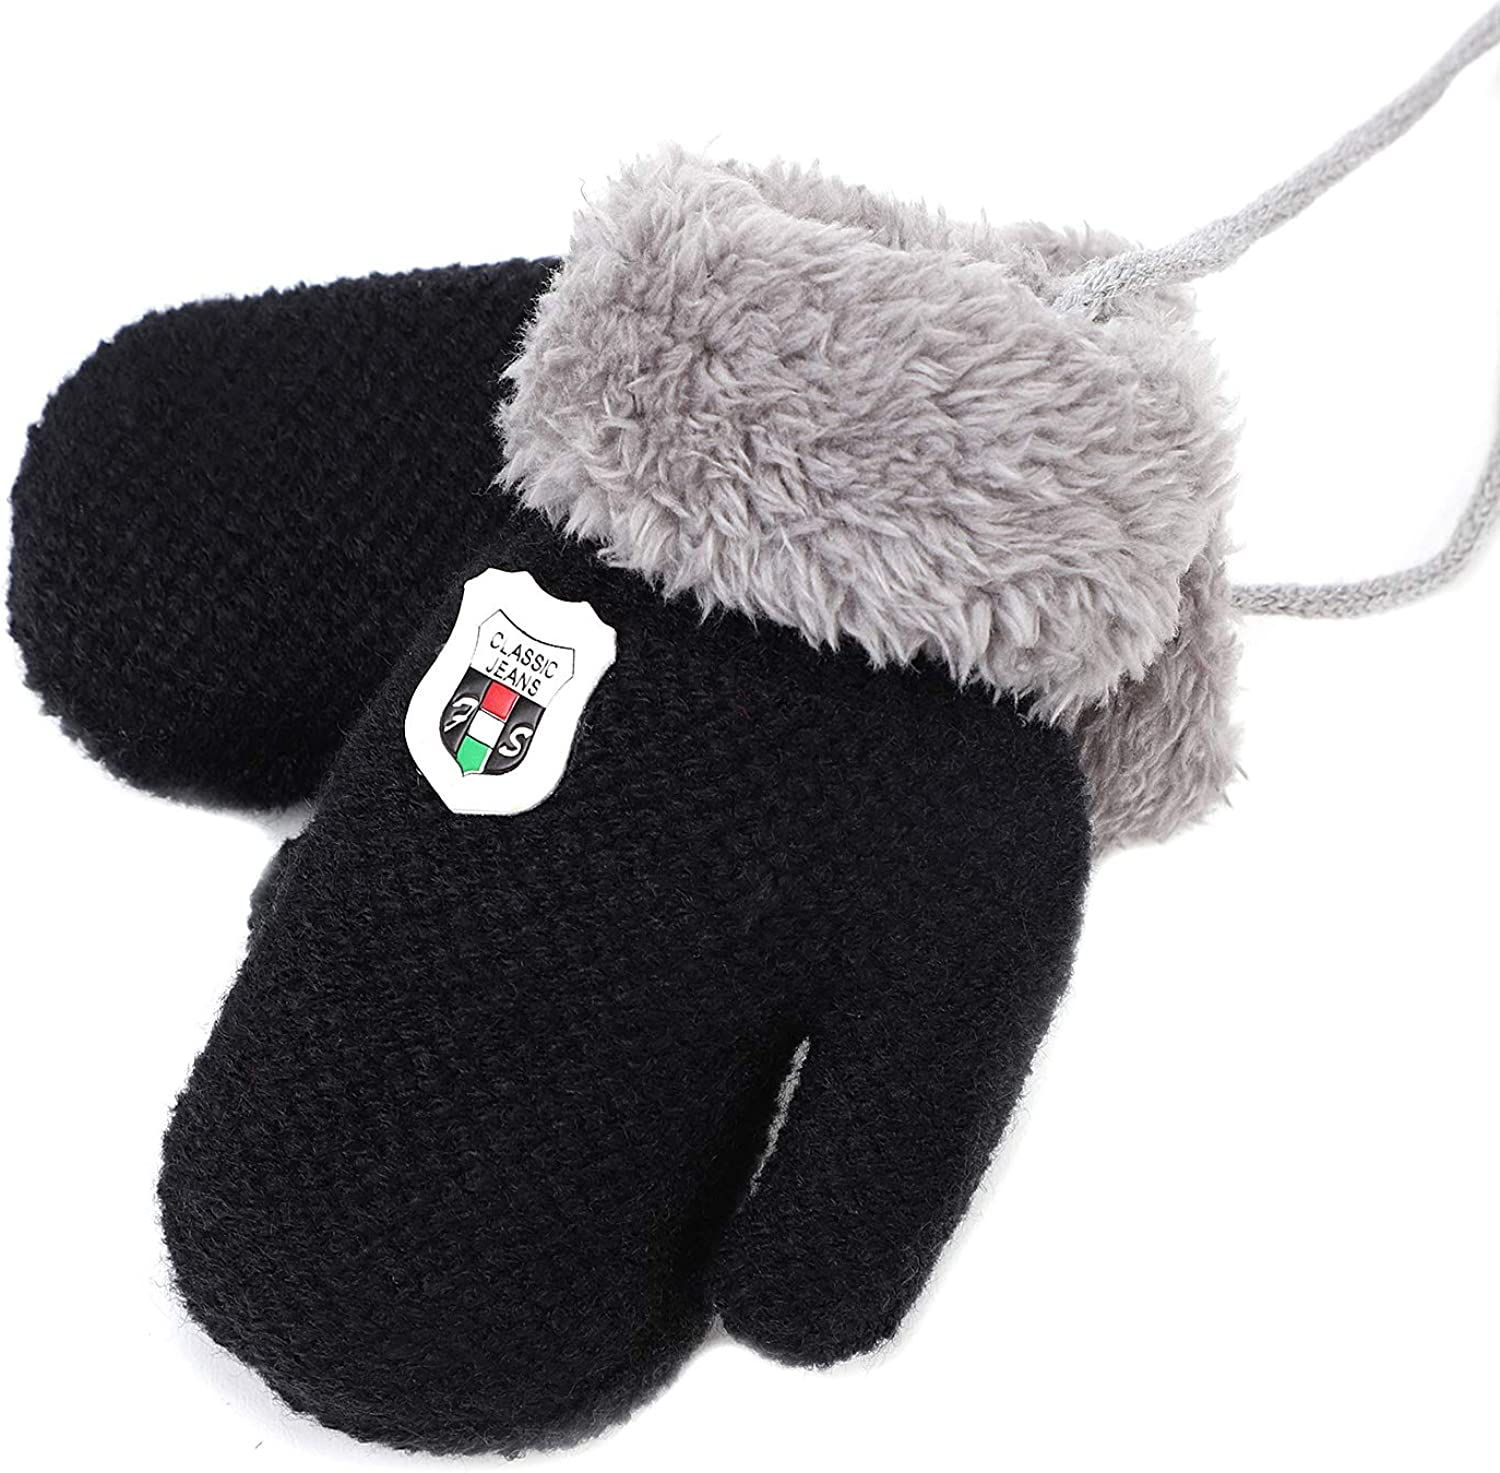 Mittens for Baby Boys Girls Toddler Infant Newborn Fleece Lined Knit Thick Thermal Gloves with String Elastic Cuff Hand Warmer Hand Wear Fuzzy Fingerless Gloves Winter Warm Cold Weather Gloves 1-5 Y